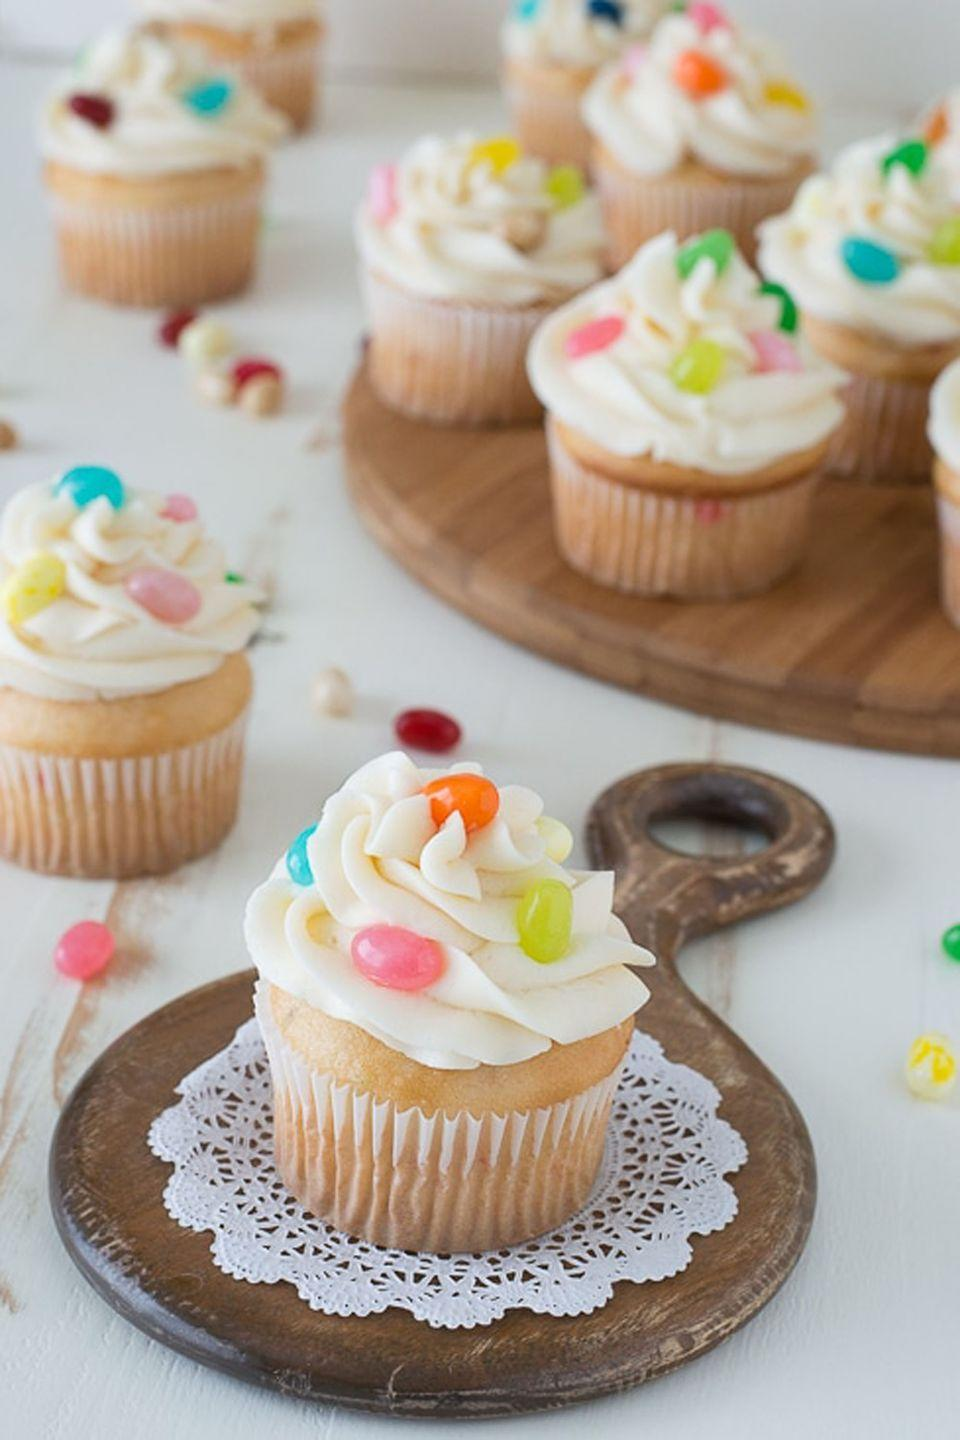 """<p>Intimidated by elaborate cupcake decorations? Just sprinkle a colorful assortment of sugary-sweet jelly beans and call it a day. </p><p>Get the full recipe from <a href=""""https://thefirstyearblog.com/jelly-belly-jelly-bean-cupcakes/"""" rel=""""nofollow noopener"""" target=""""_blank"""" data-ylk=""""slk:The First Year Blog"""" class=""""link rapid-noclick-resp"""">The First Year Blog</a>.</p>"""